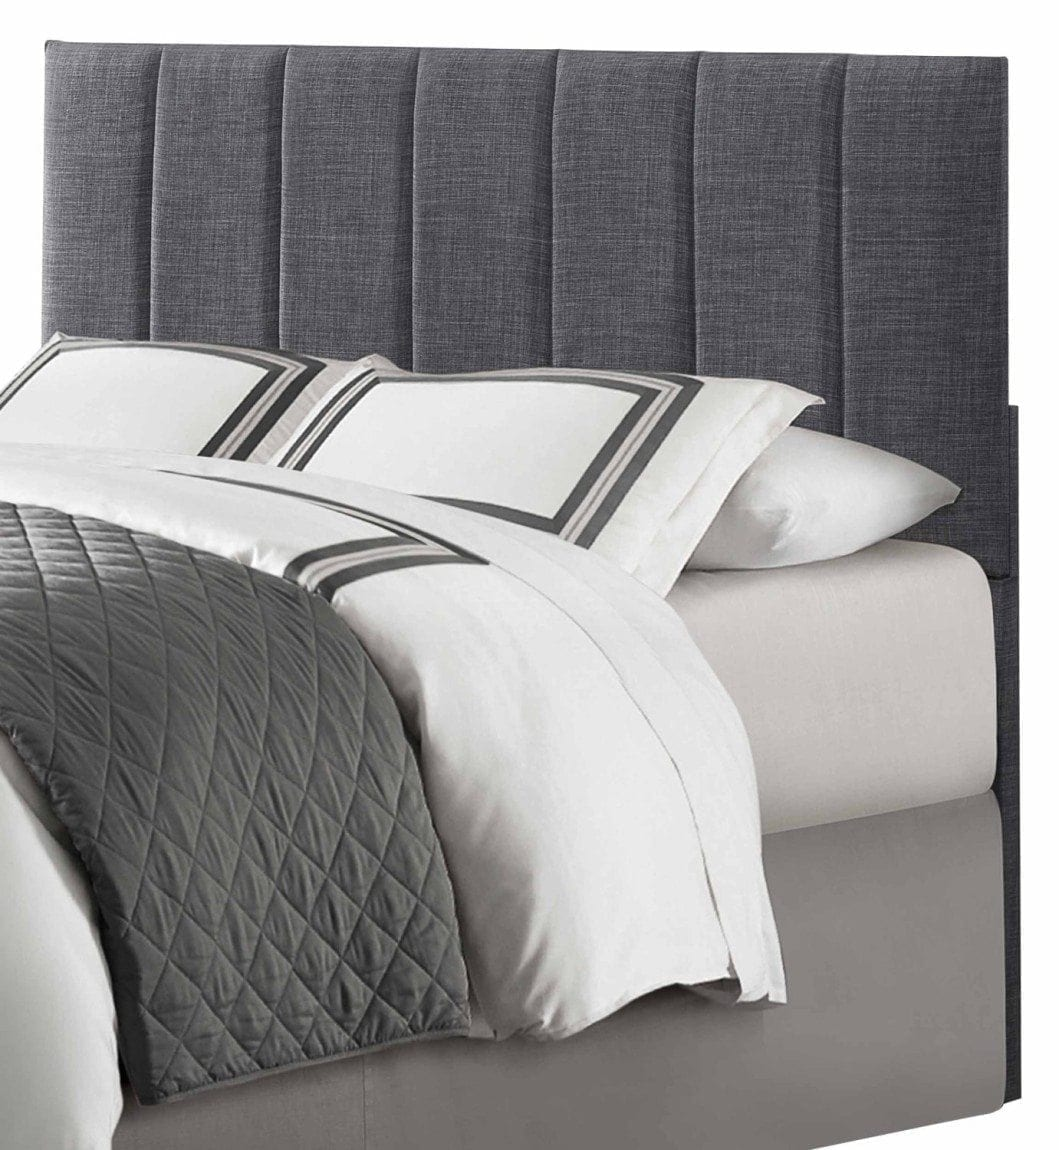 Homelegance 2024-1HB Queen:Full Size Headboard, Grey Linen-Like Fabric